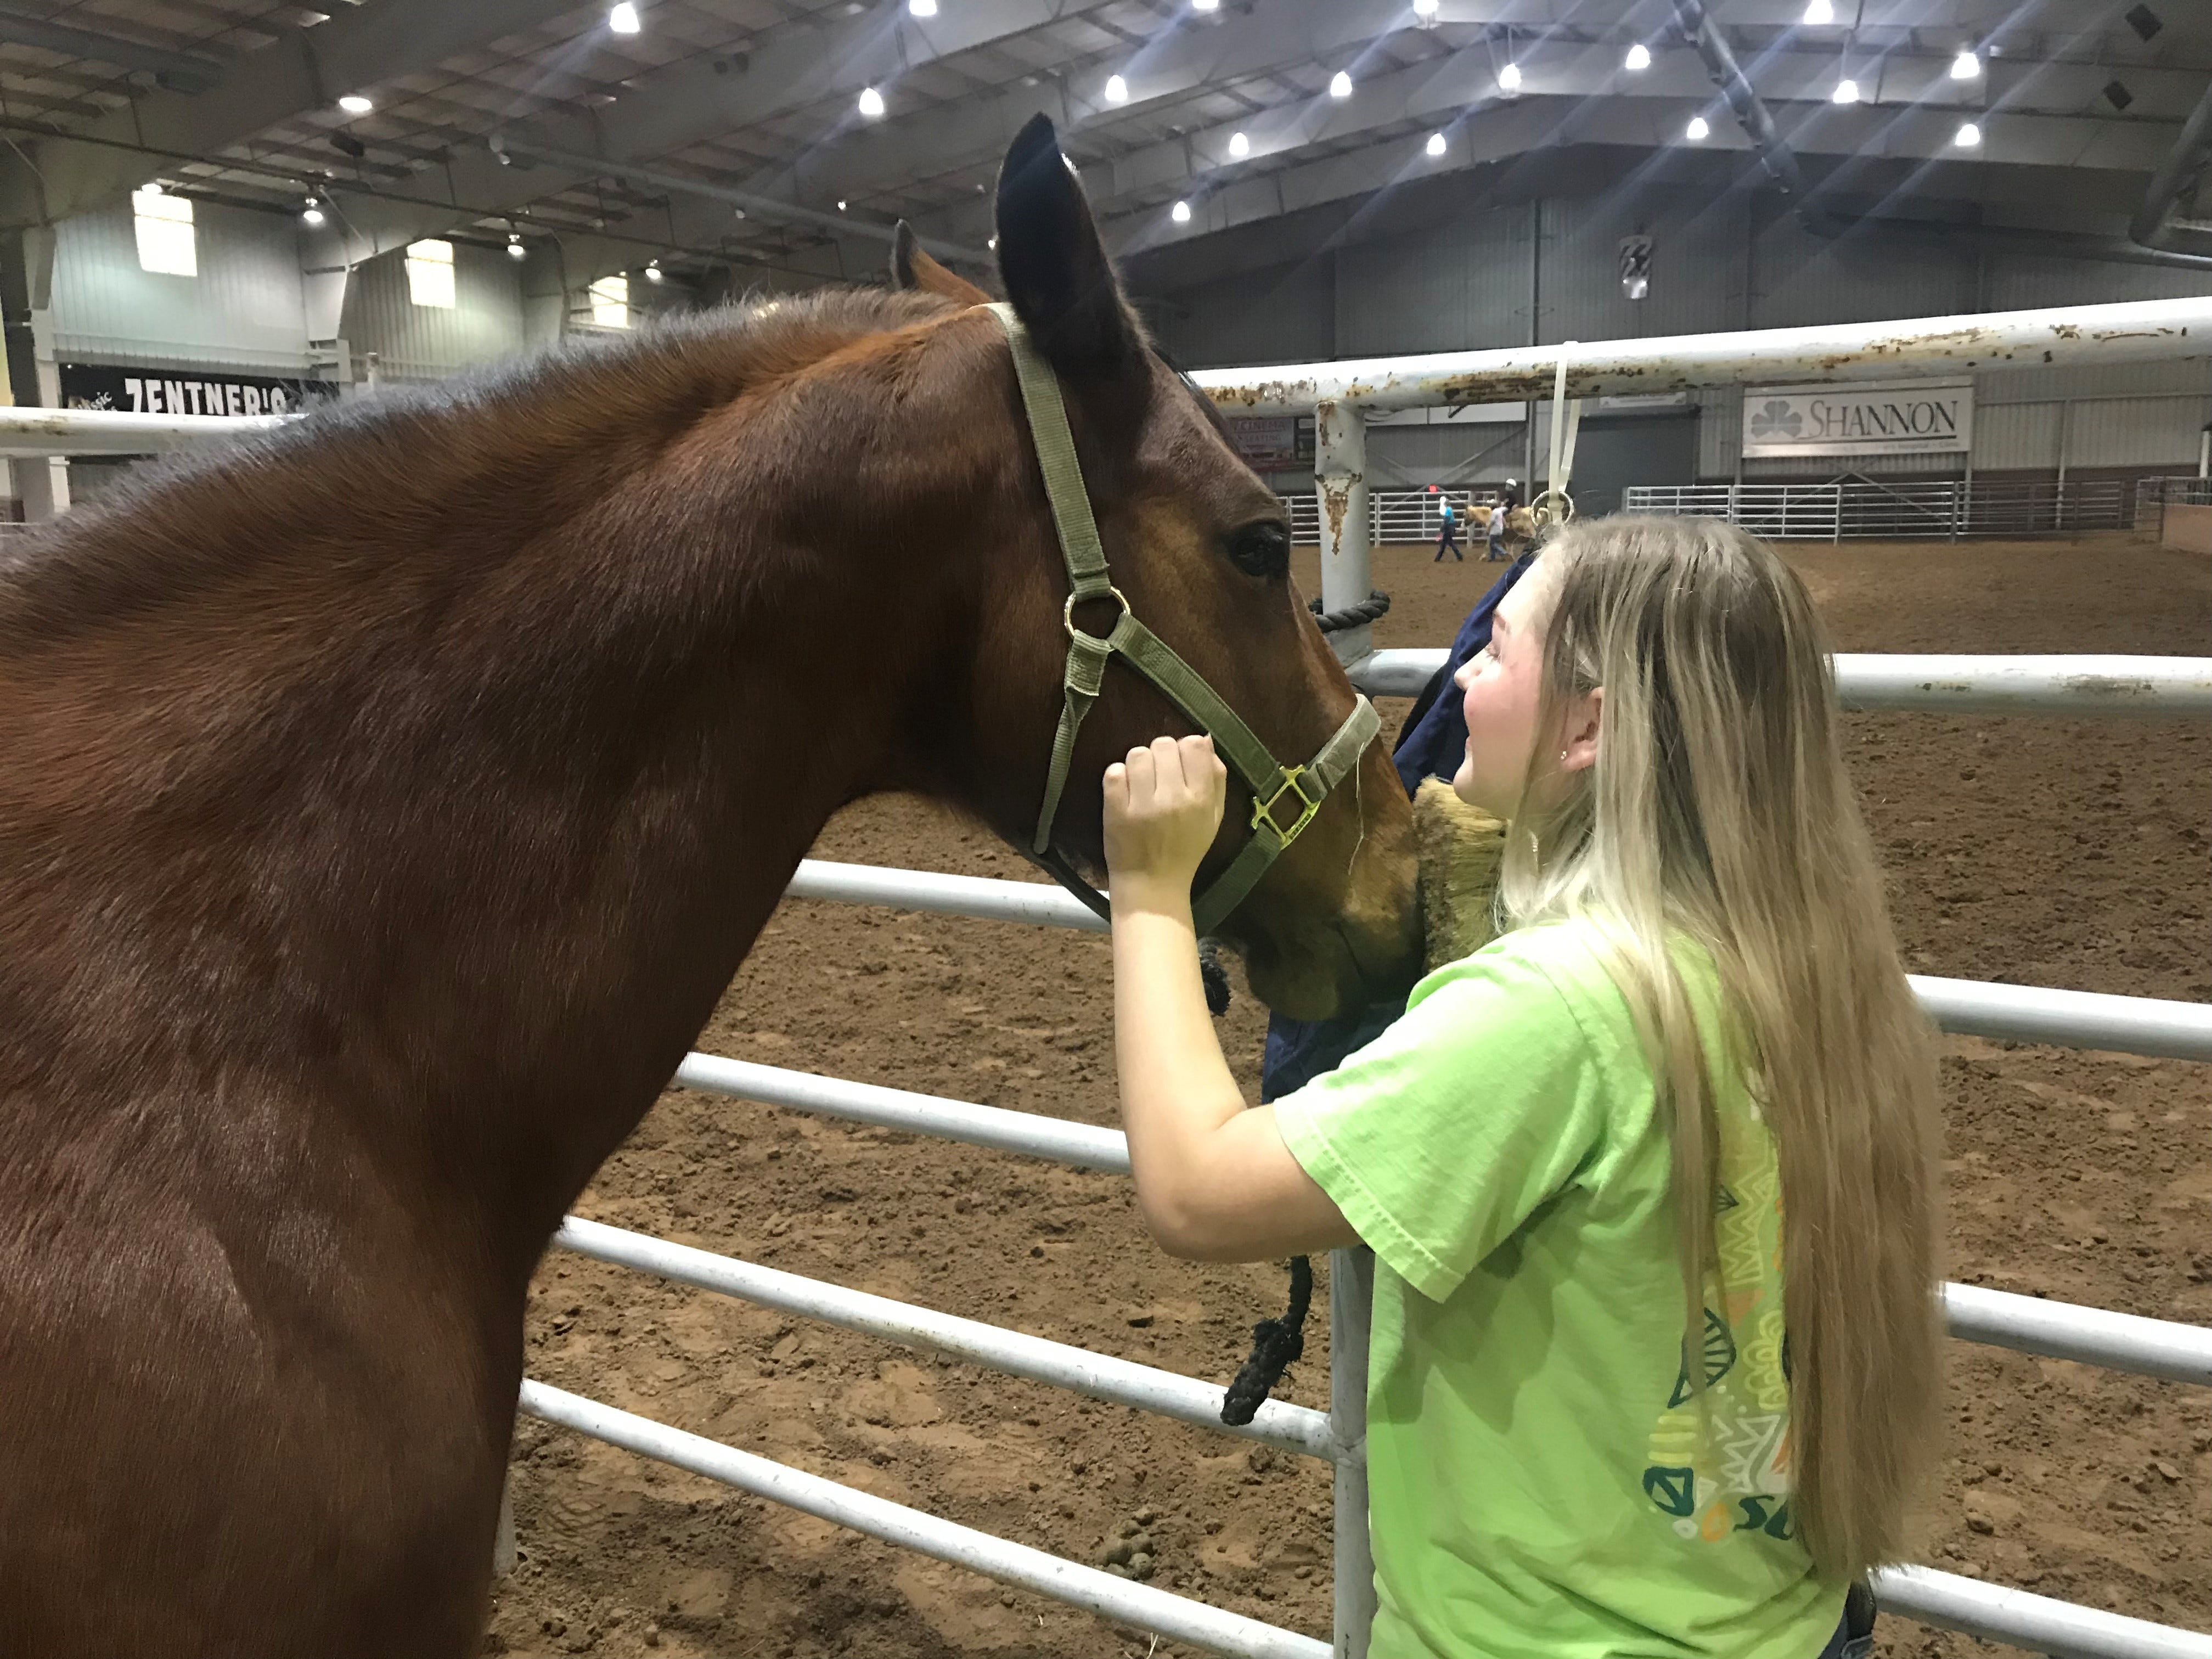 Jacey Brashear brushes her horse Faith on Dec. 25, 2018 during the Hope, Love and Horses event hosted by Sonrisas Trails and Stone Arbor Farms at 1st Community Federal Credit Union Spur Arena.